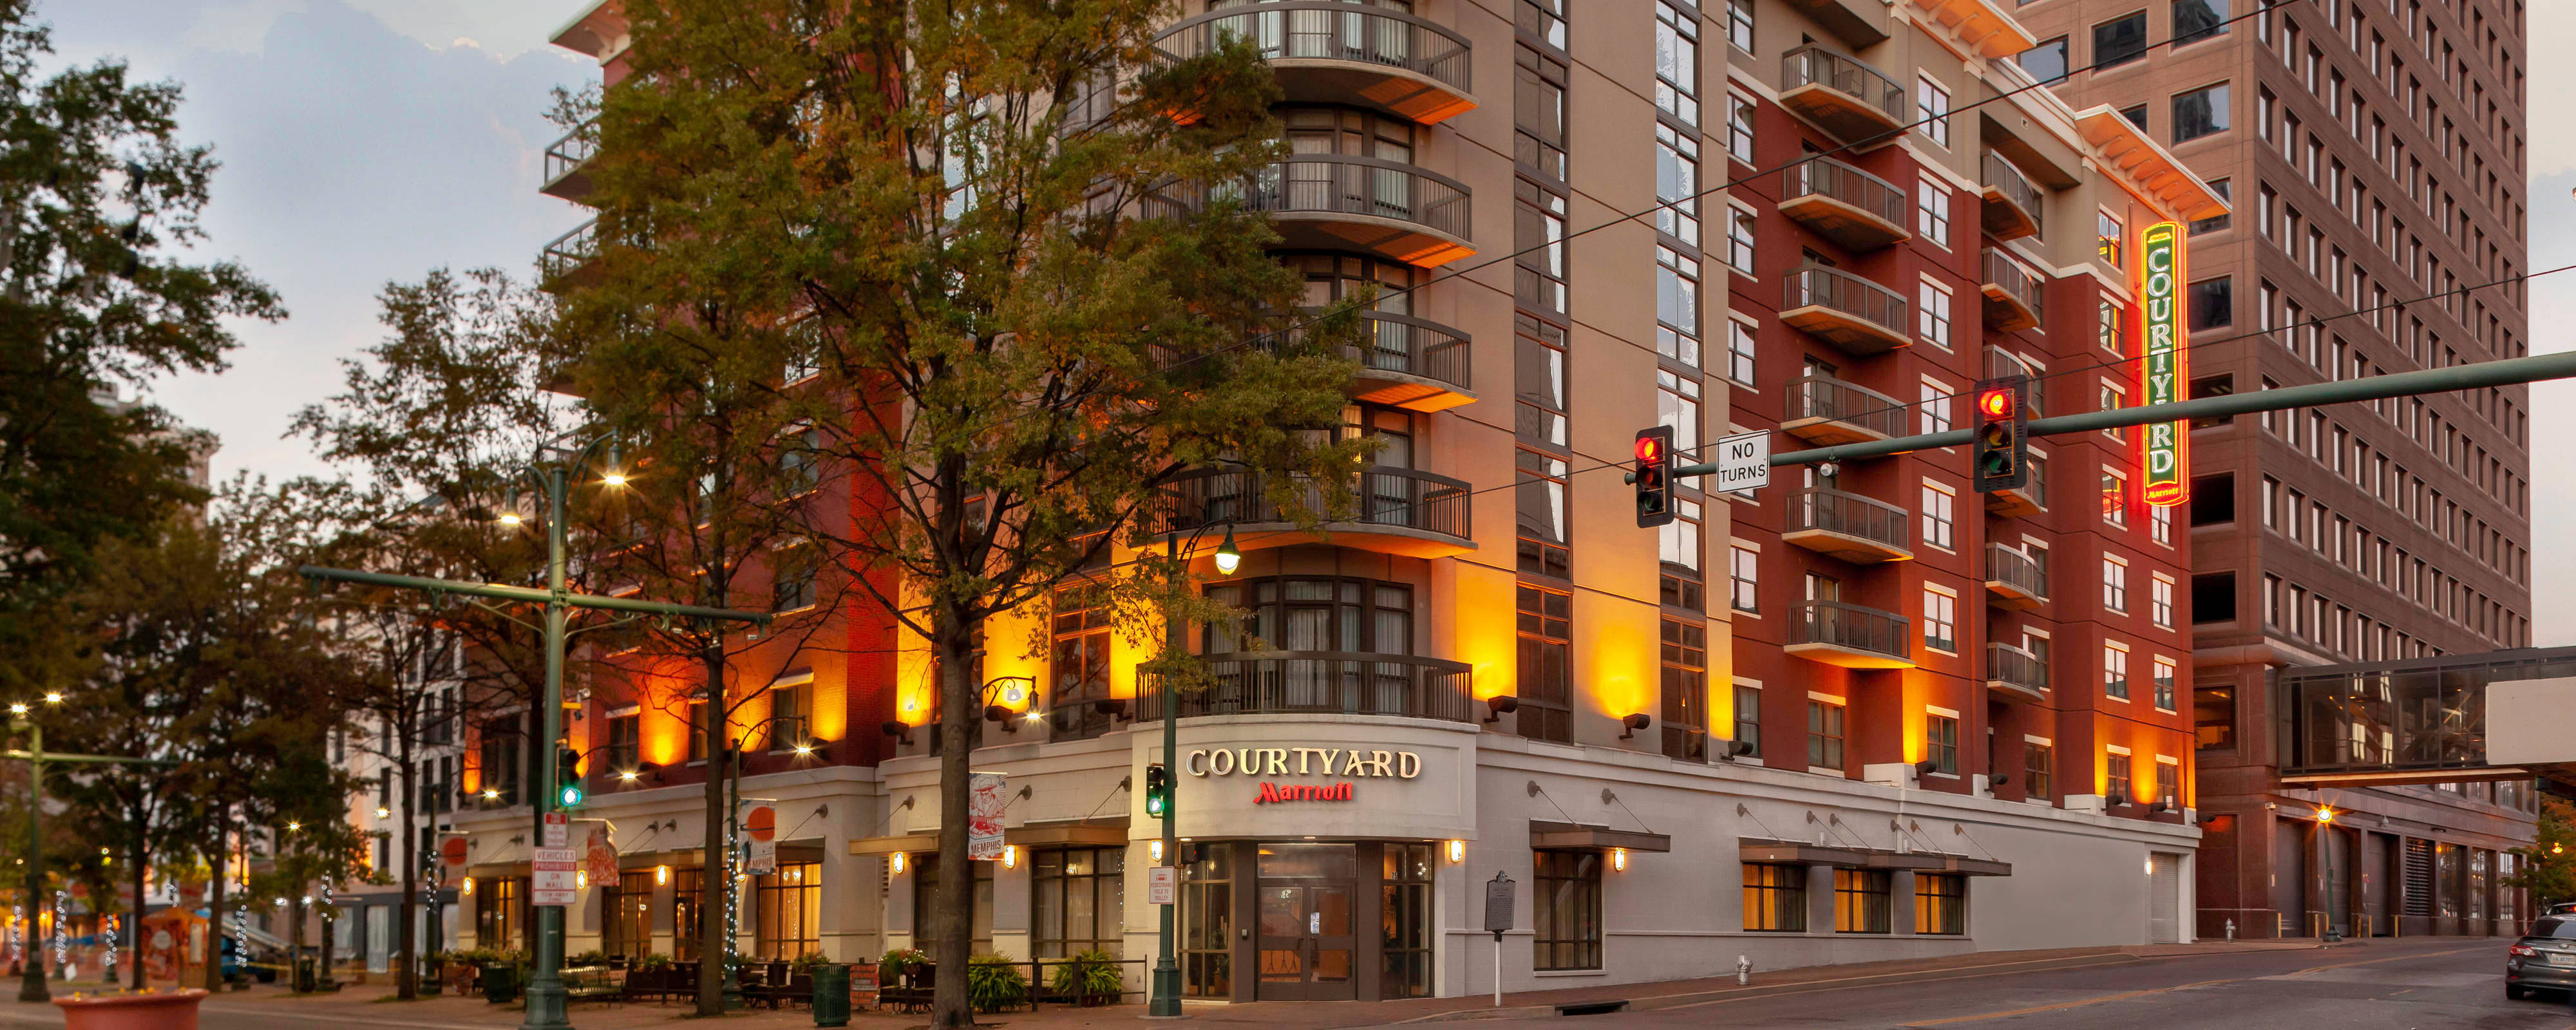 Courtyard Marriott - Memphis, TN